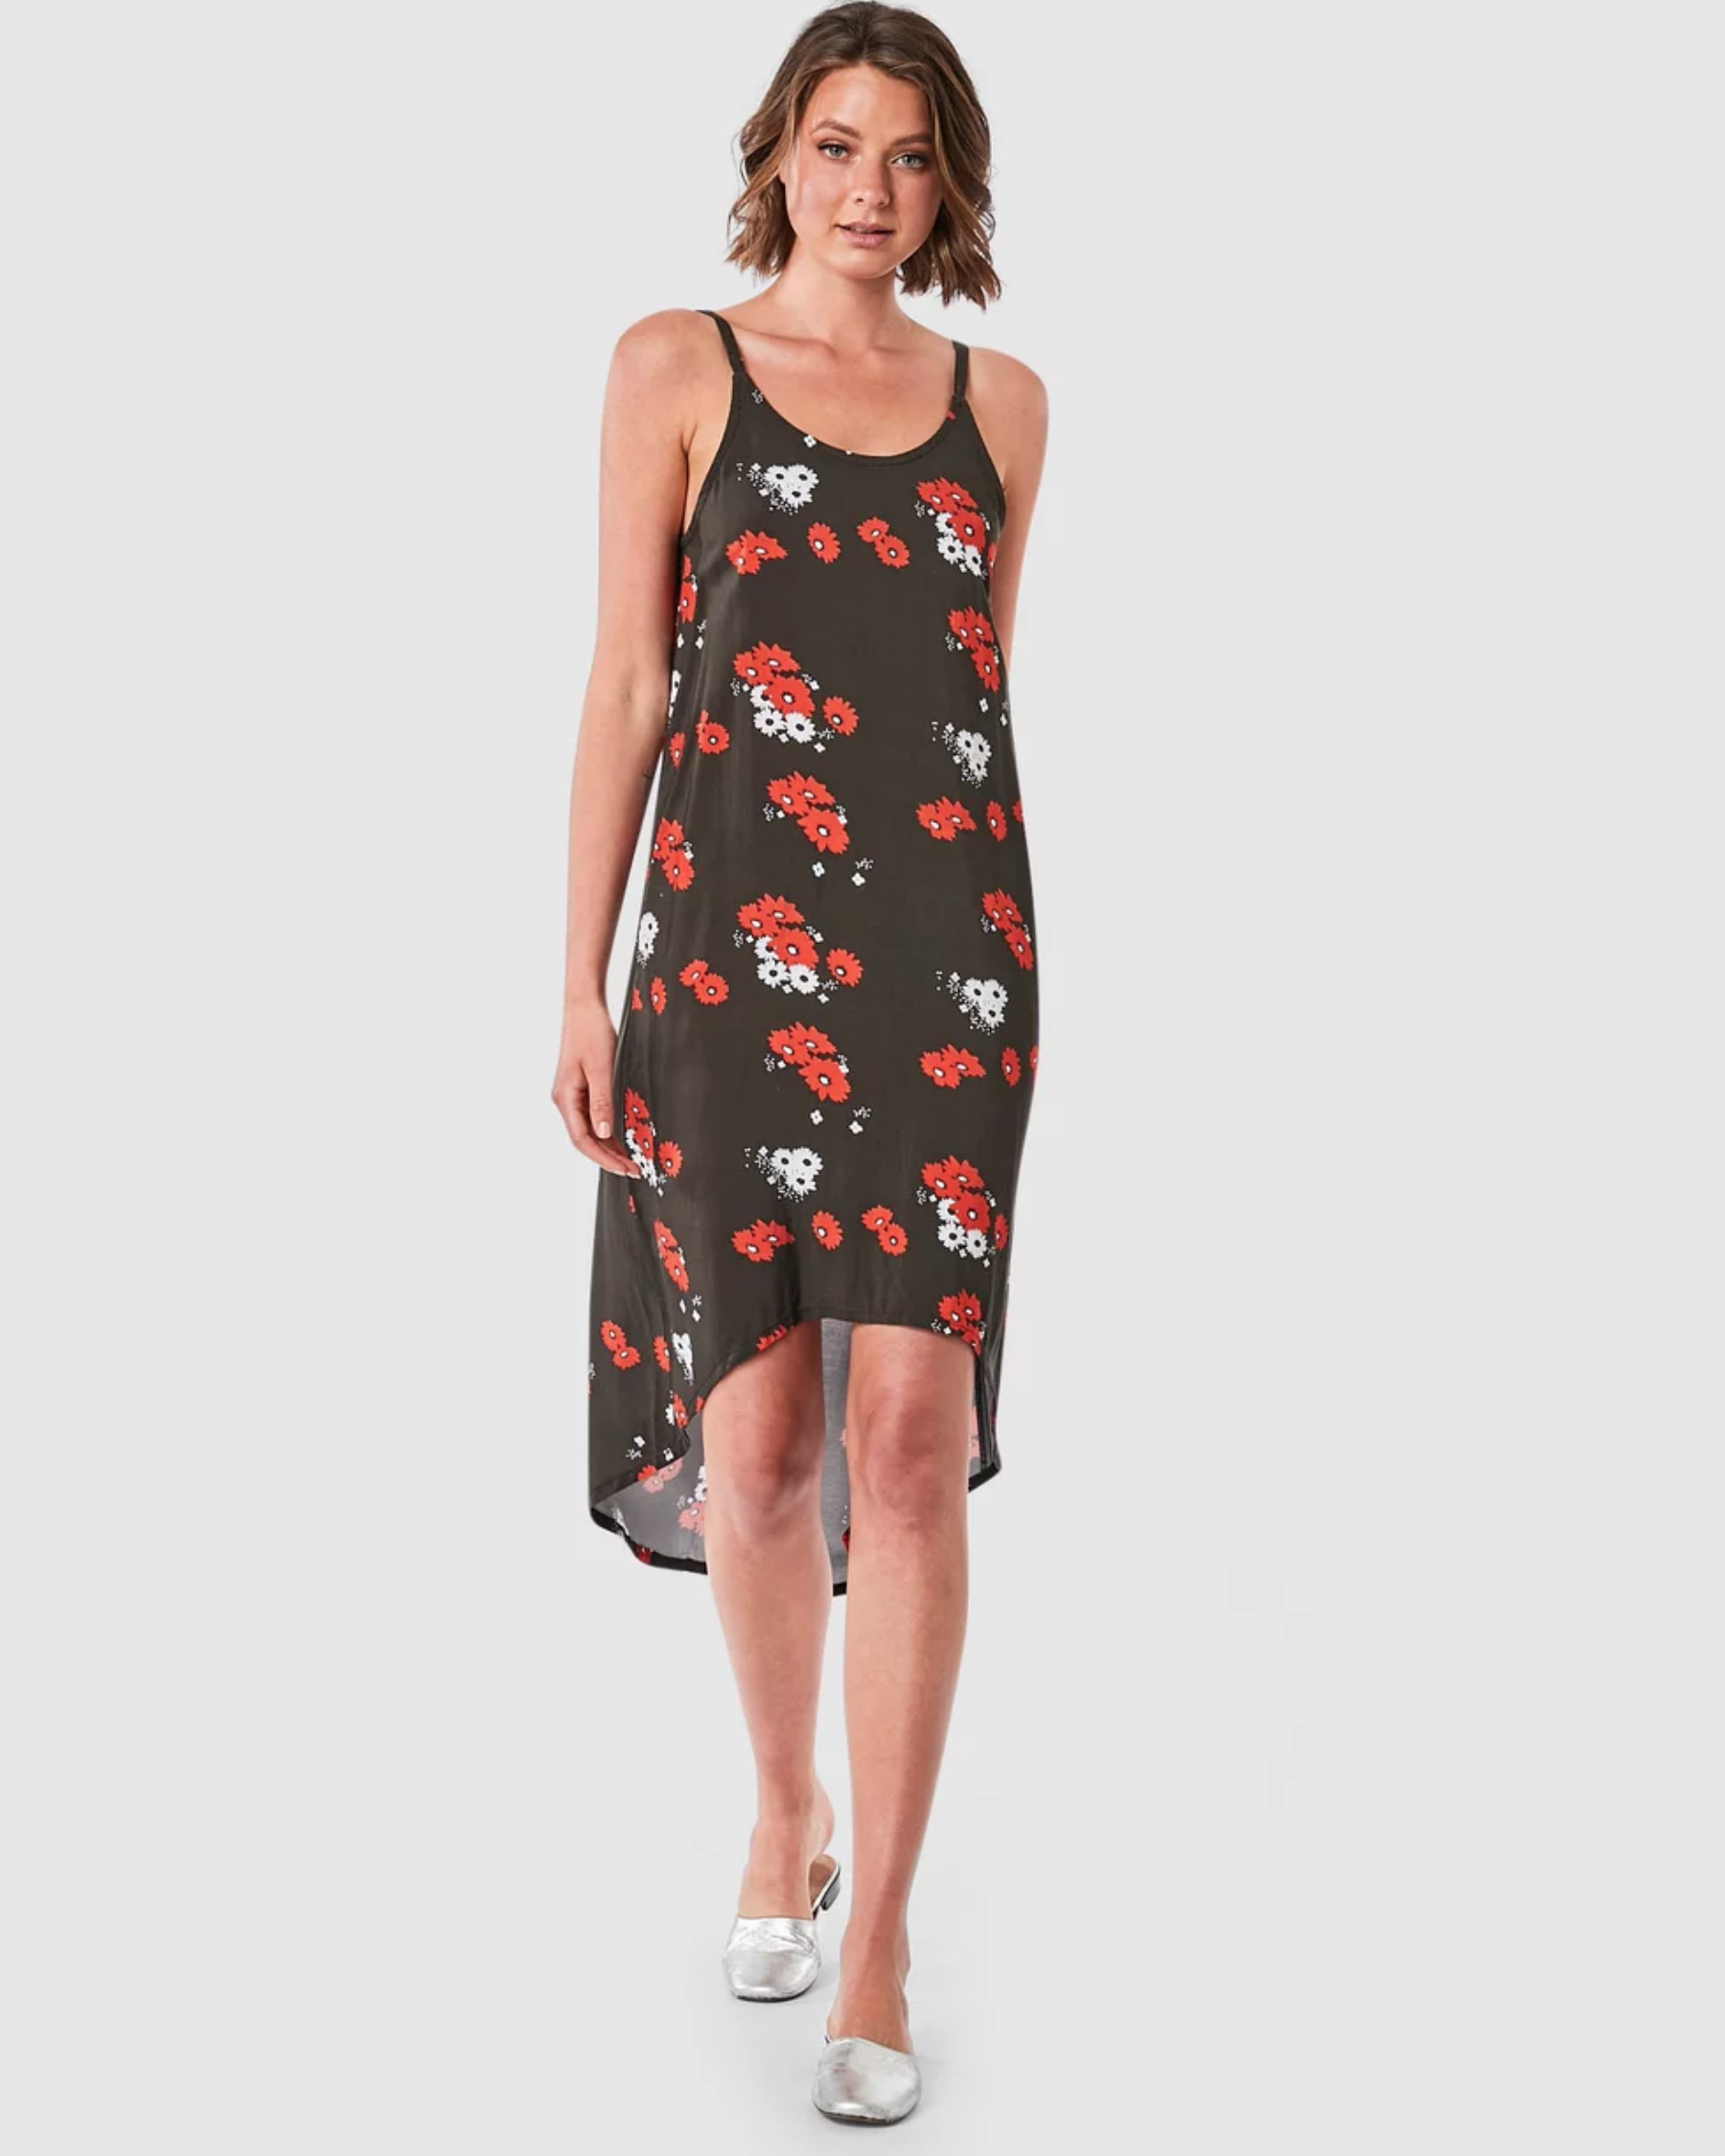 Elwood Daisy Slip Dress - Daisy Print